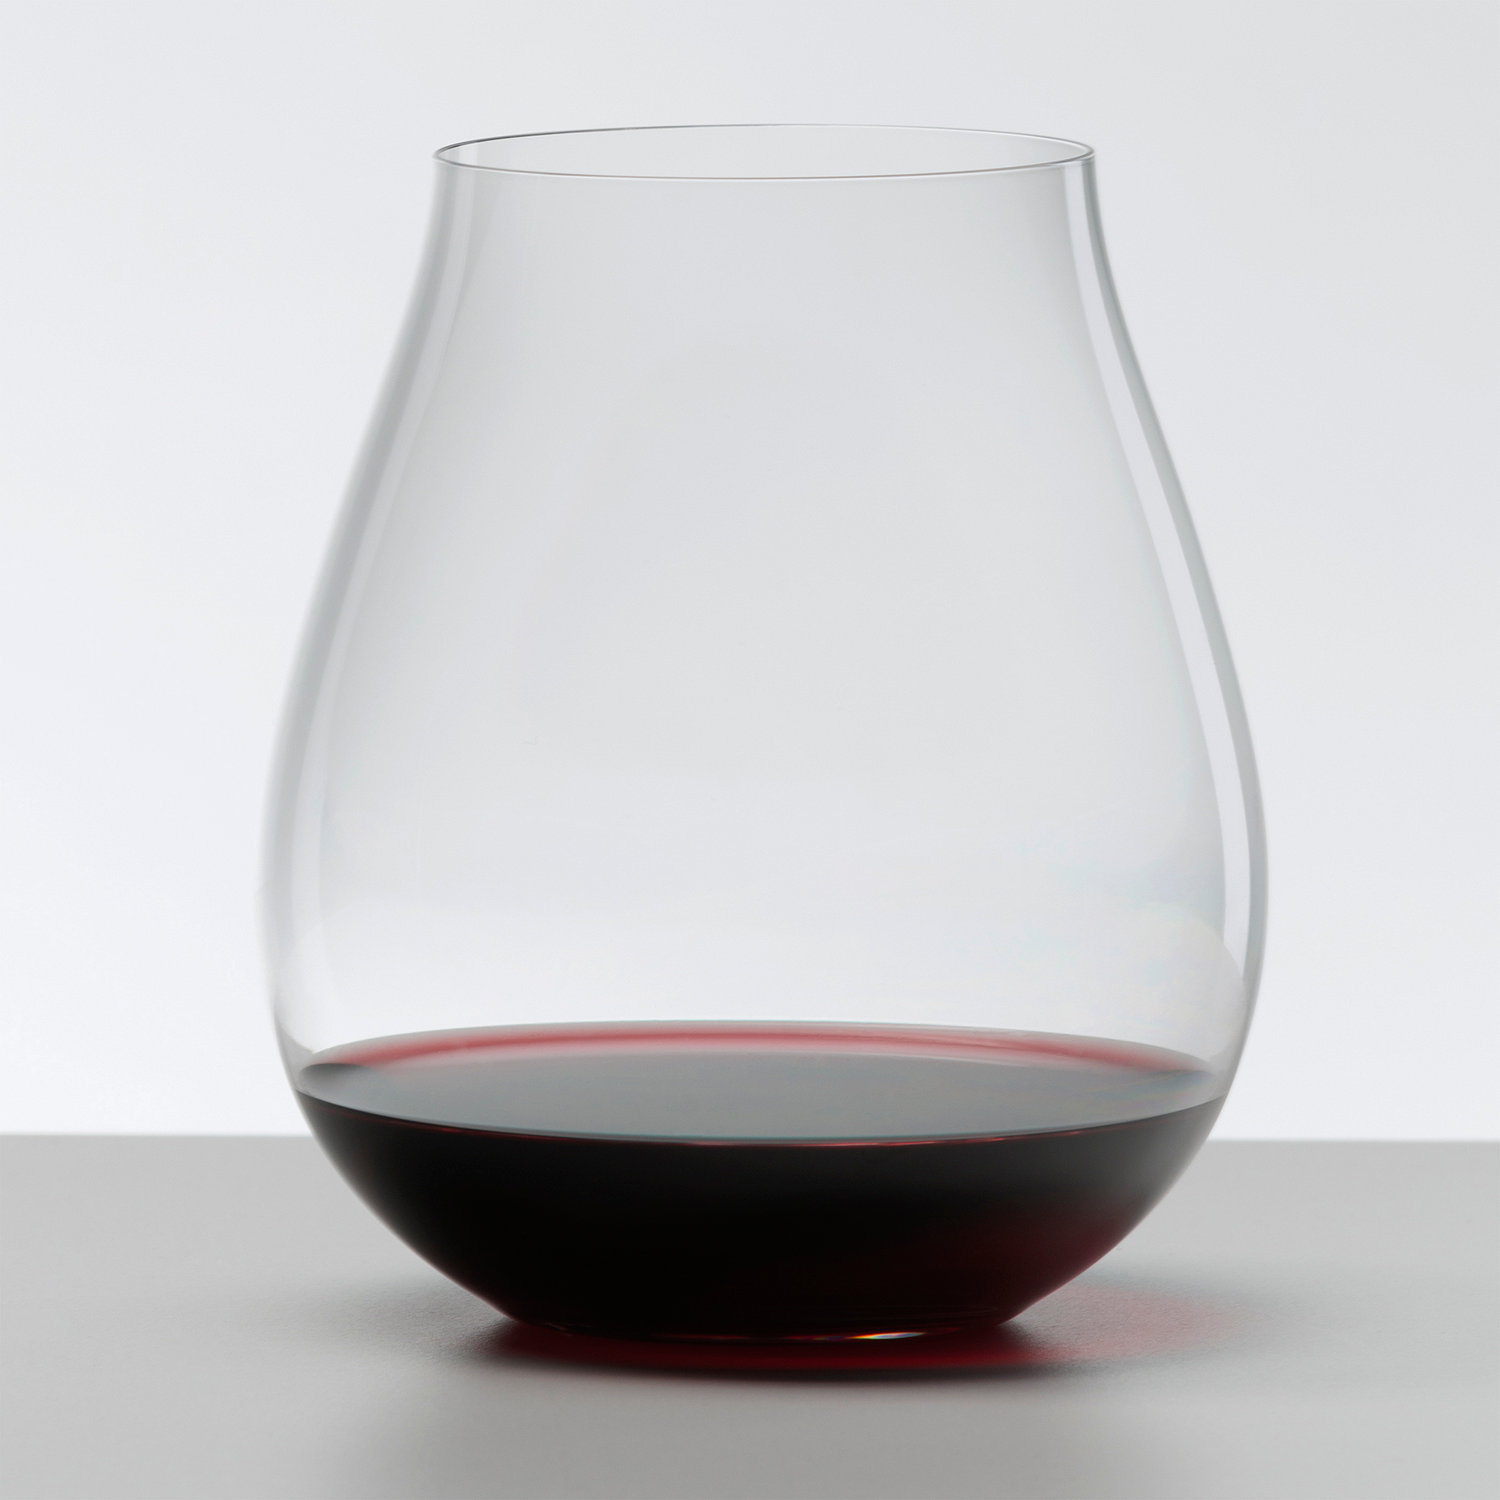 Pictures of big glasses of wine neo gifts Big w wine glasses